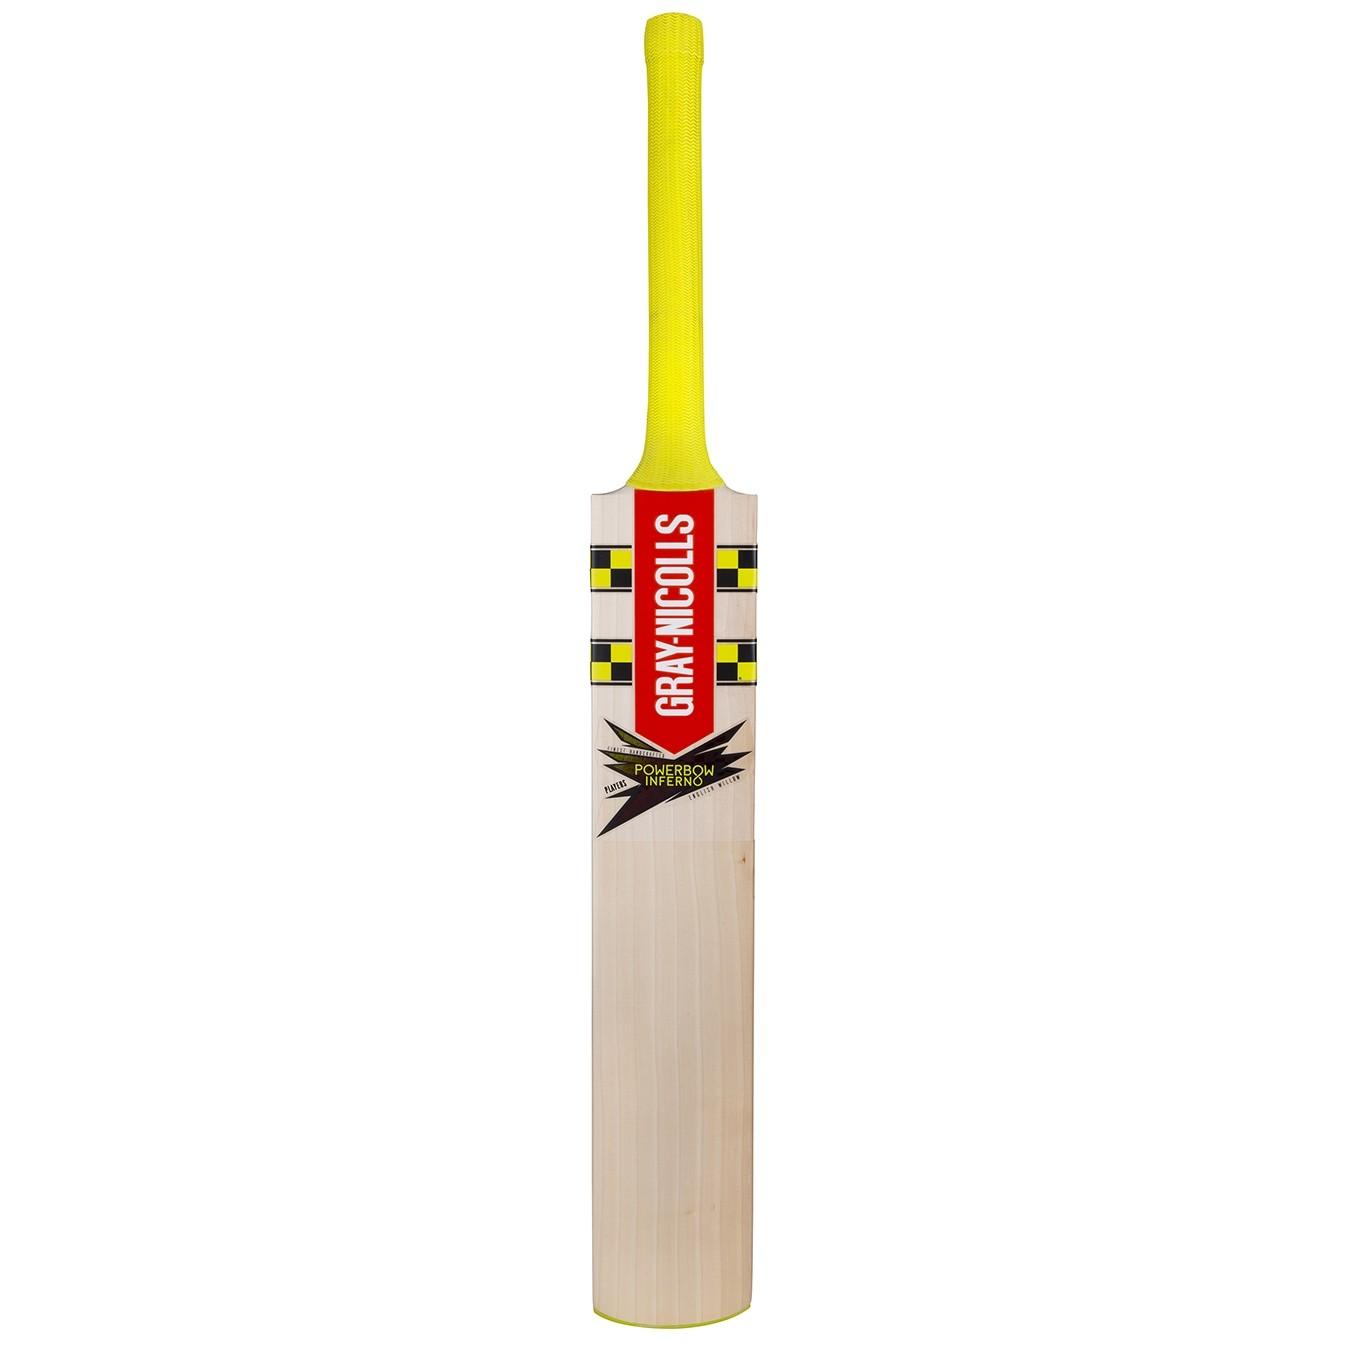 2020 Gray Nicolls Powerbow Inferno Players Cricket Bat